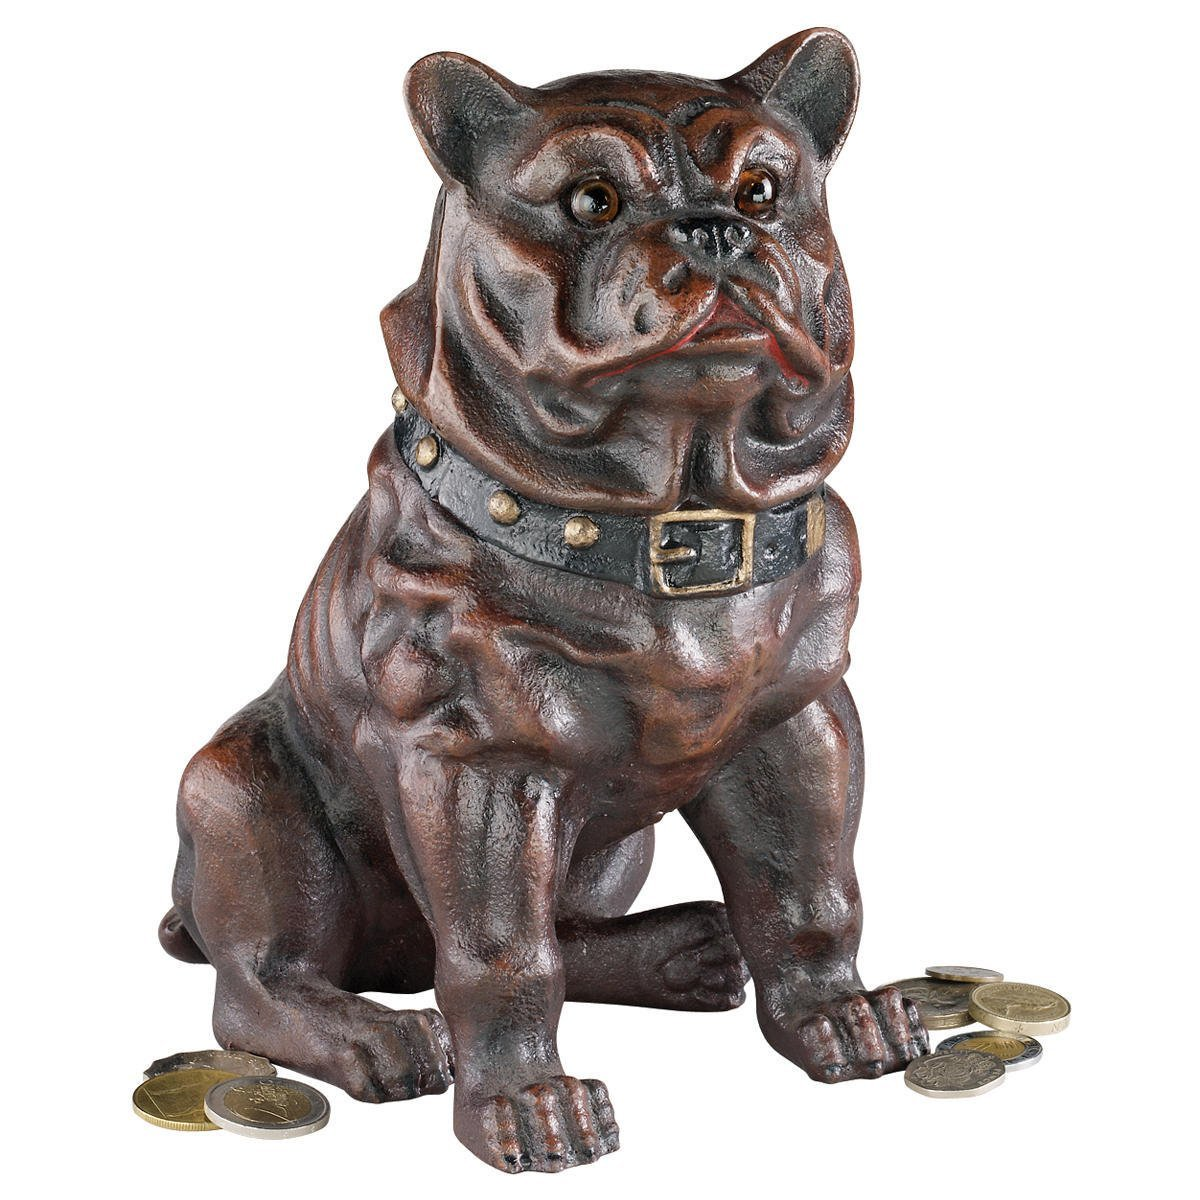 The Sitting British Bulldog Mechanical Bank